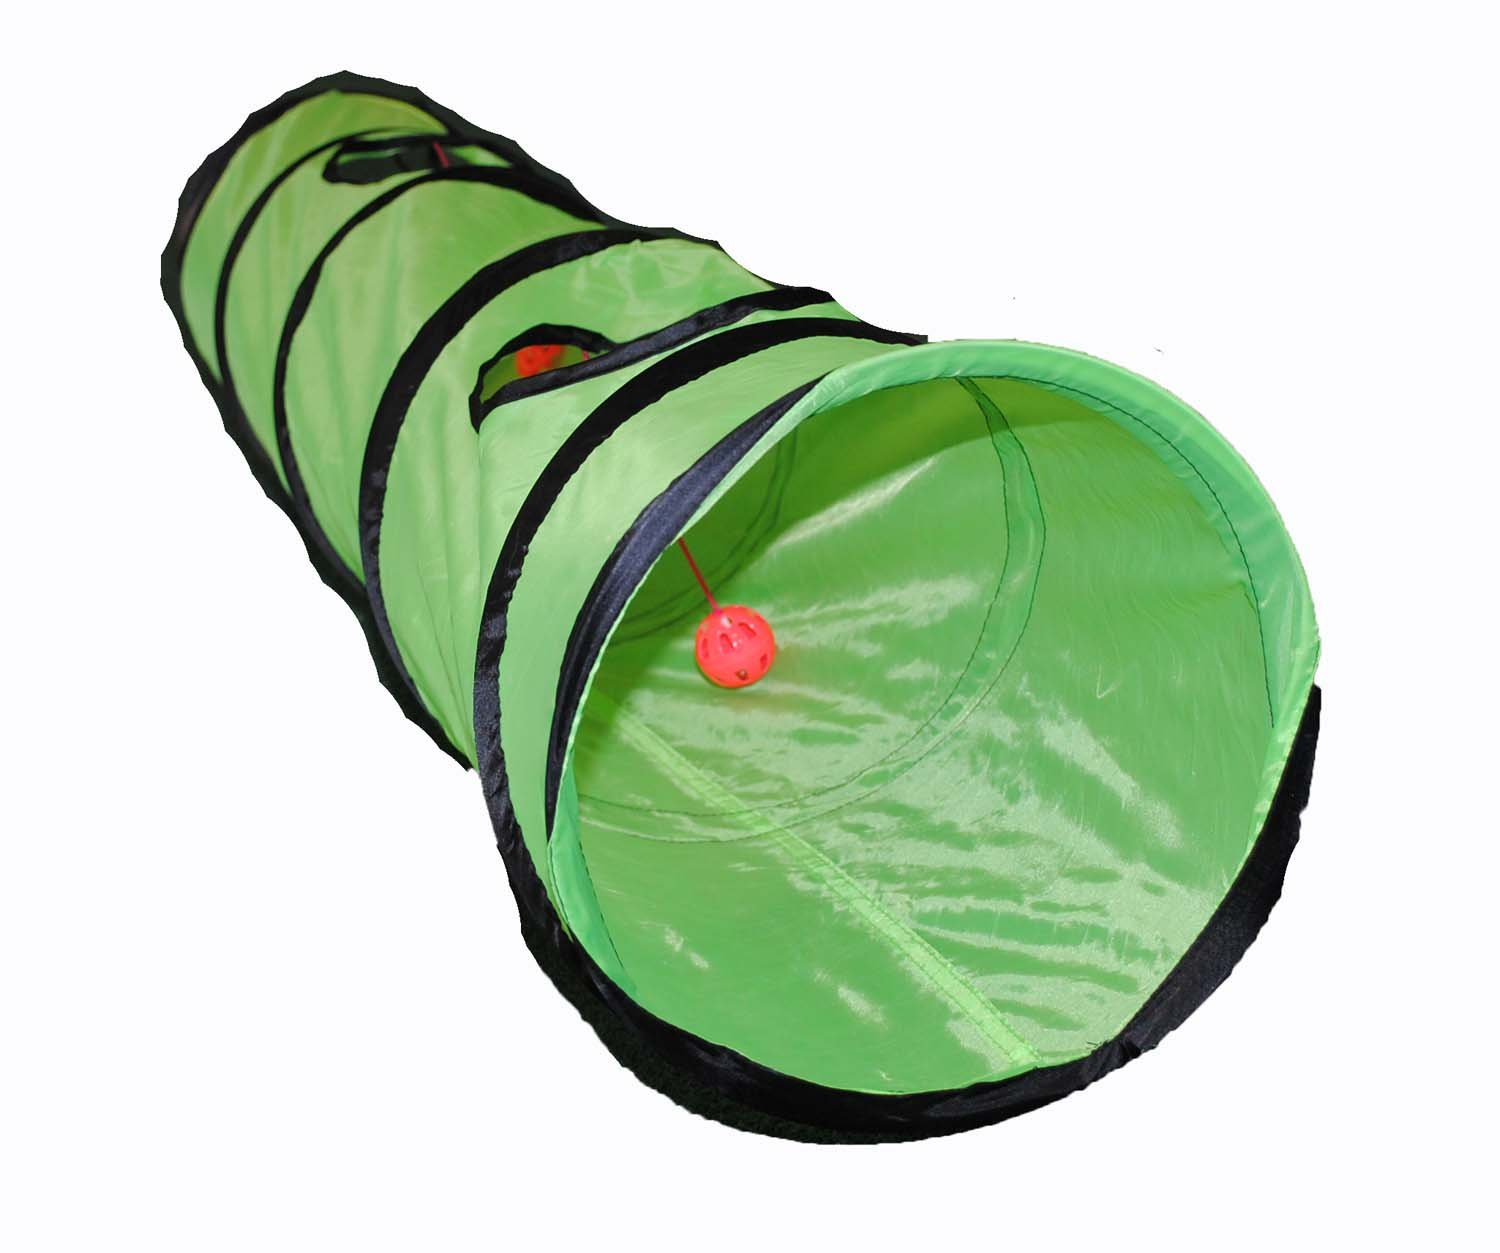 Shop4Omni Brand New Kitty Cat Play Tunnel Pet Toy Four Exit Holes, Green